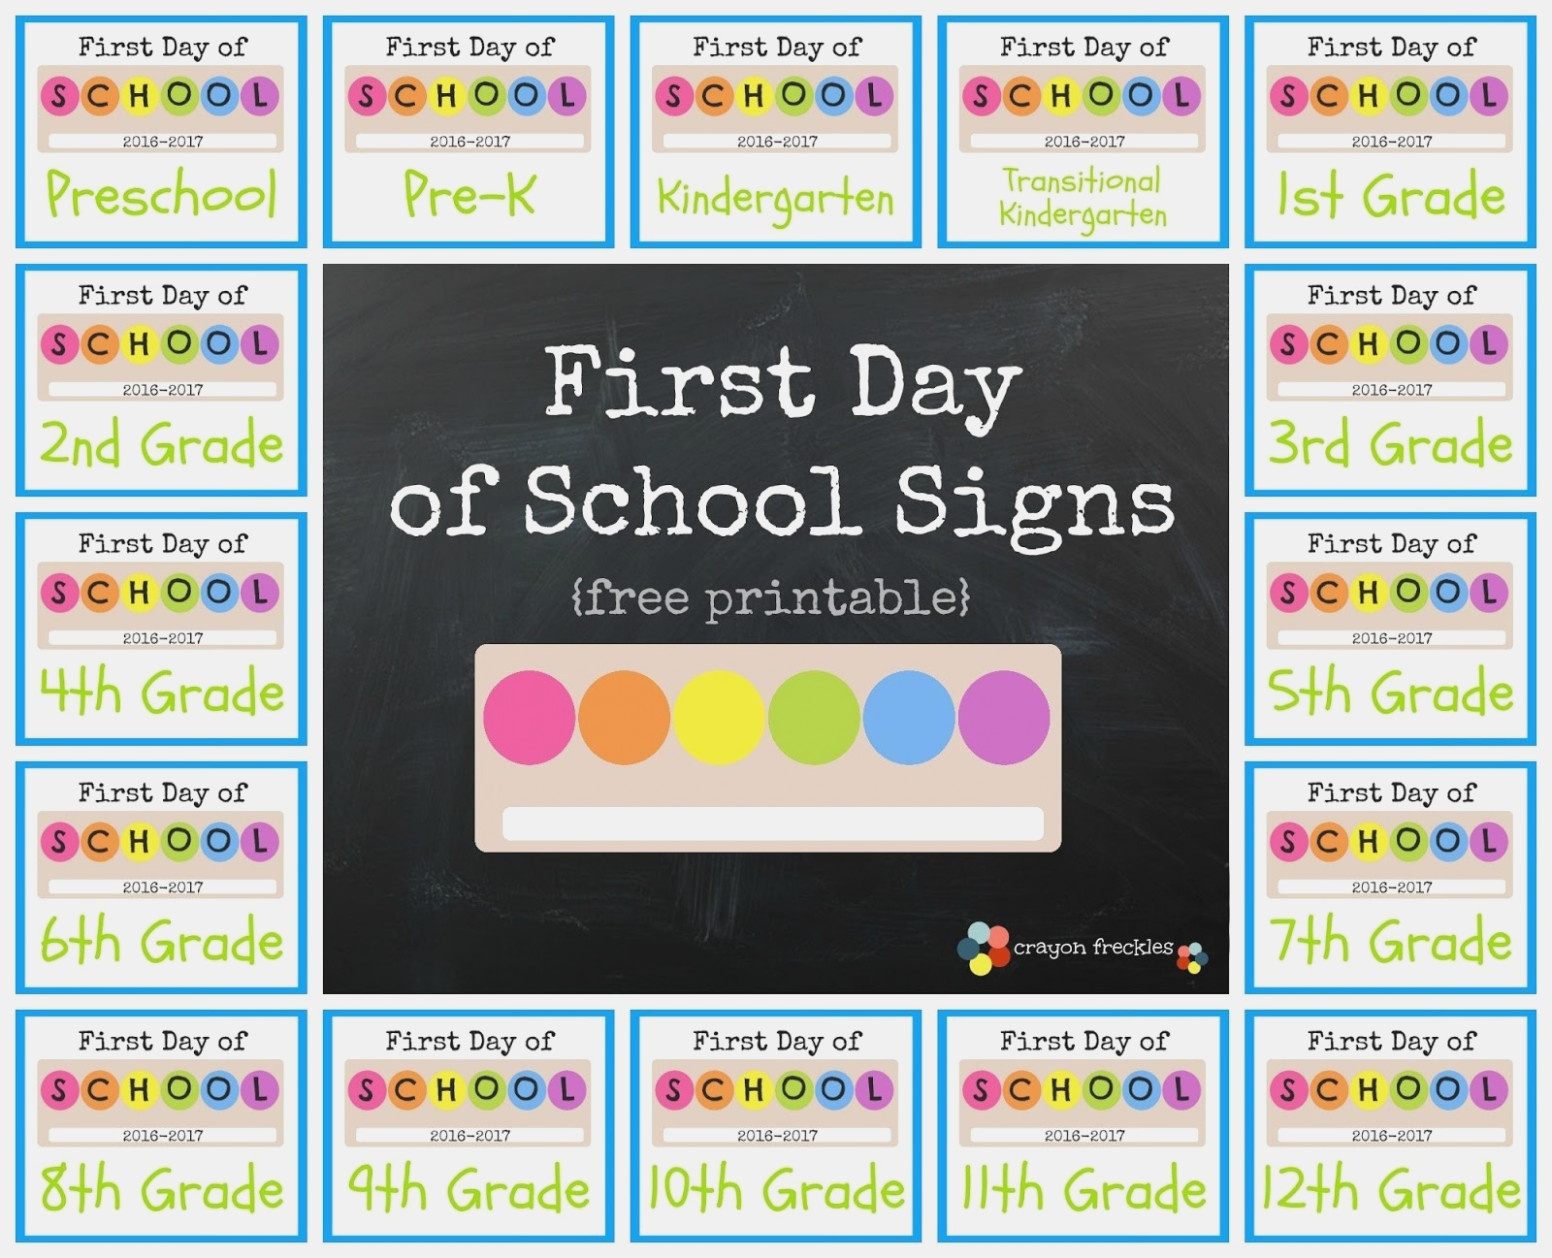 Free Printable Classroom Signs And Labels | Popisgrzegorz – Label - Free Printable Classroom Signs And Labels